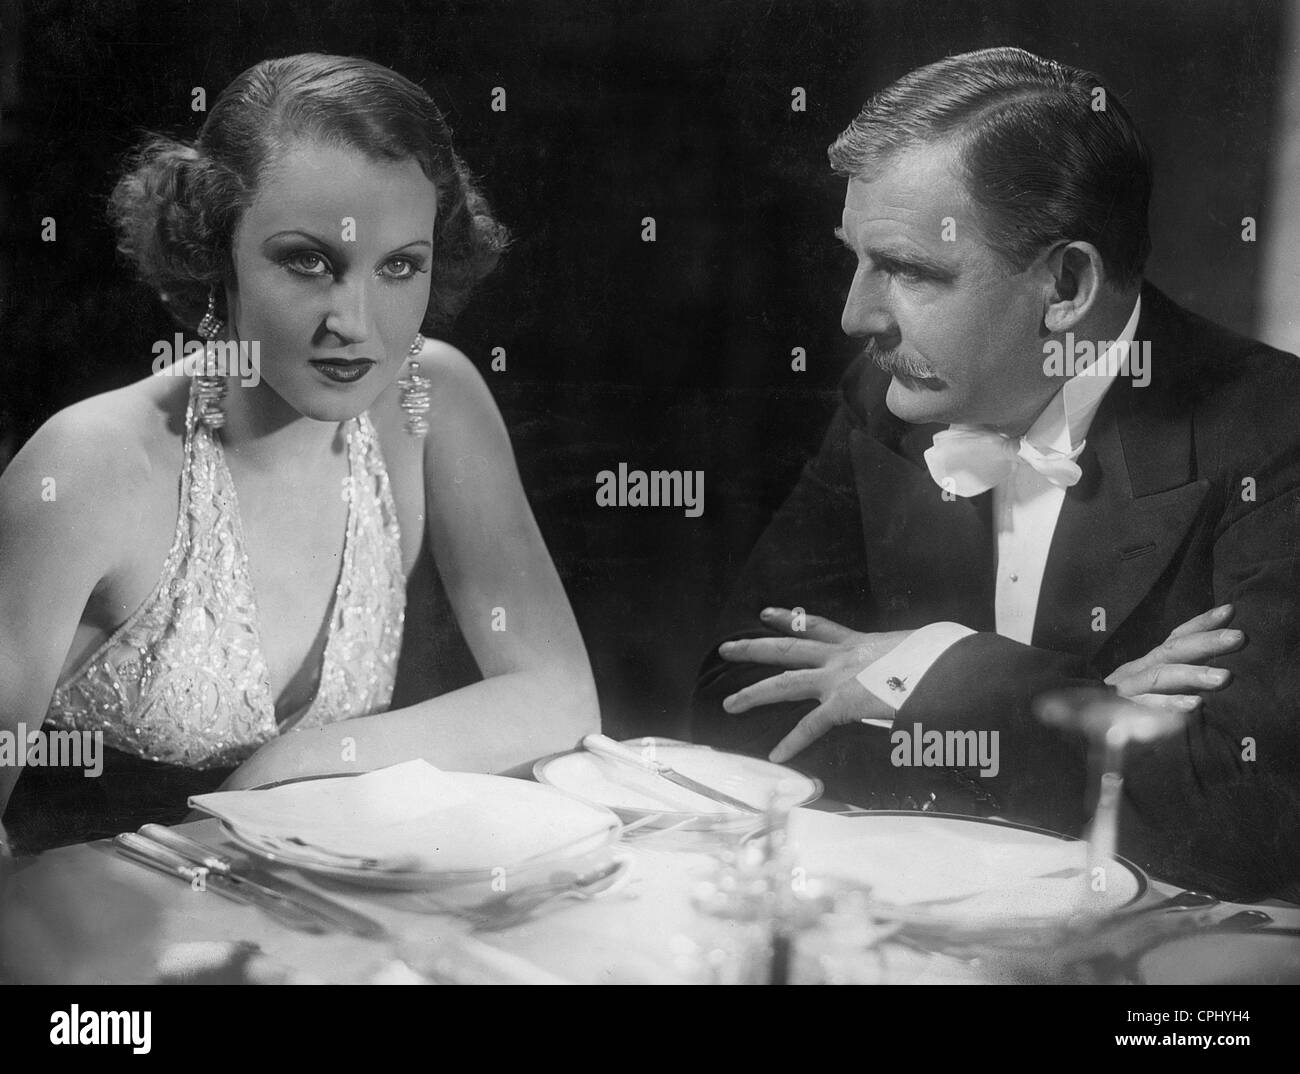 Brigitte Helm and Rudolf Forster in 'The Countess of Monte-Christo', 1932 - Stock Image